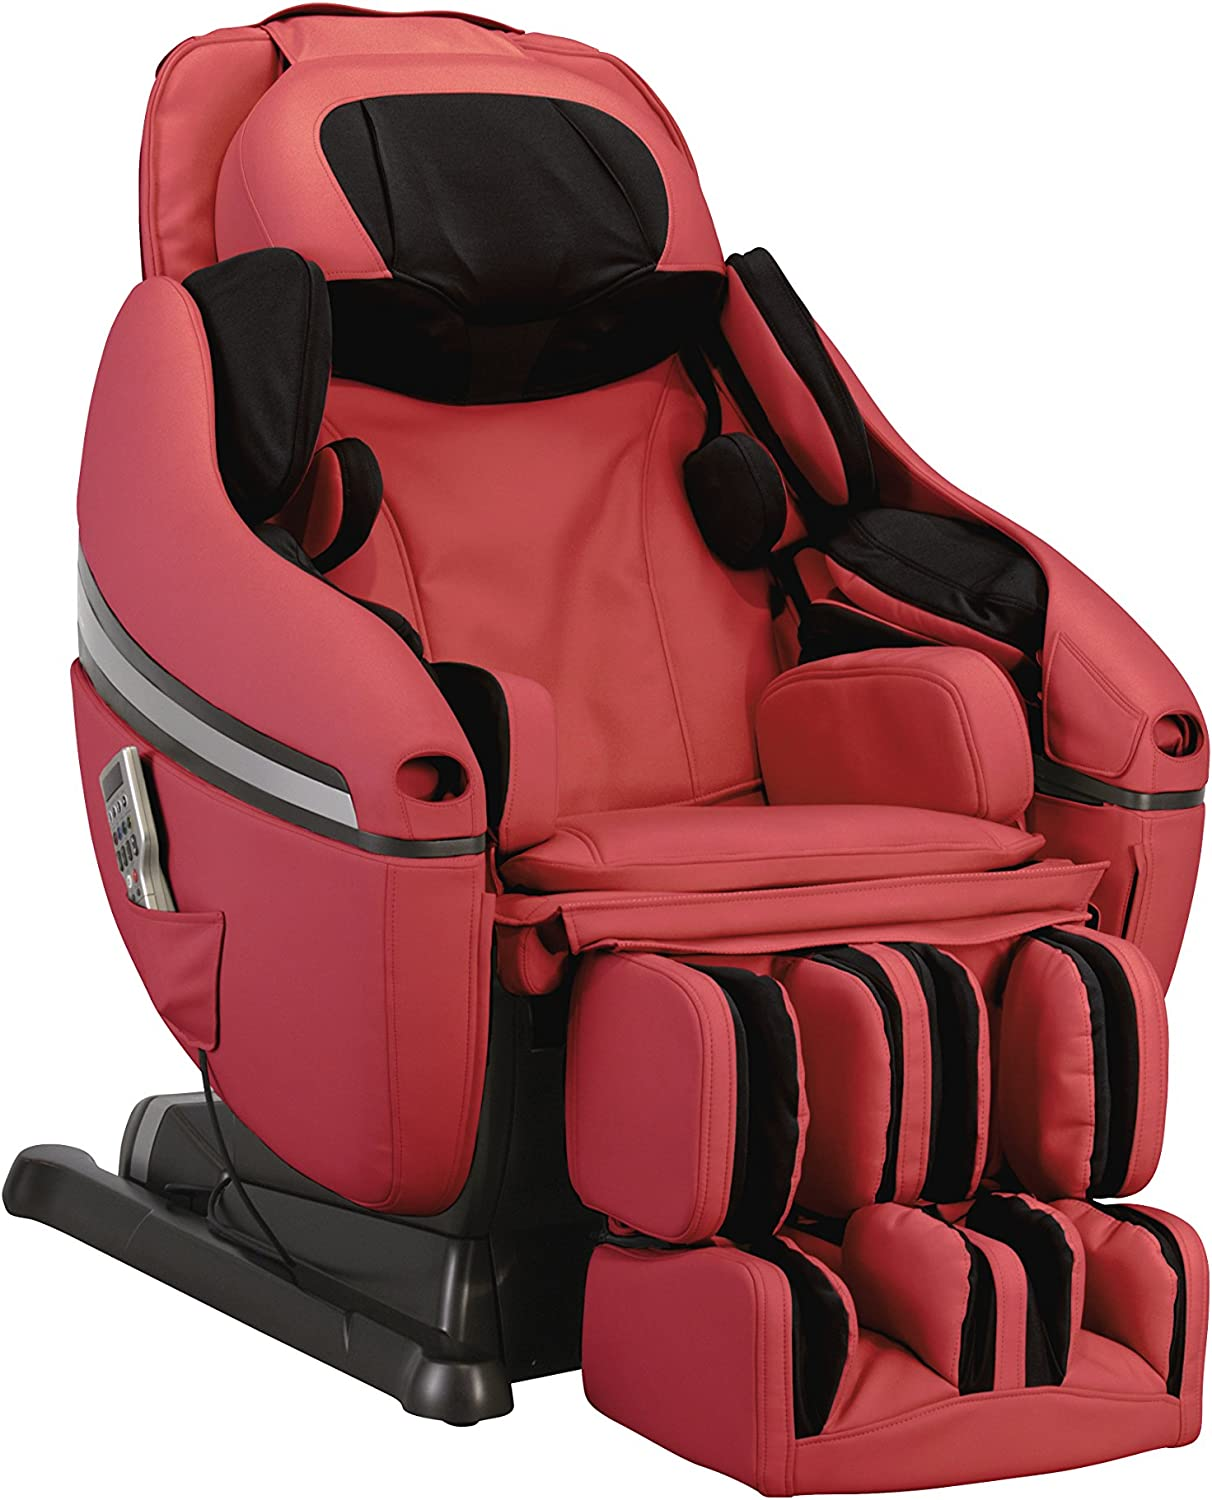 81vtwcTzhfL. AC SL1500 - Buyer's Guide: The 10 Best Massage Chairs for 2021 - ChairPicks